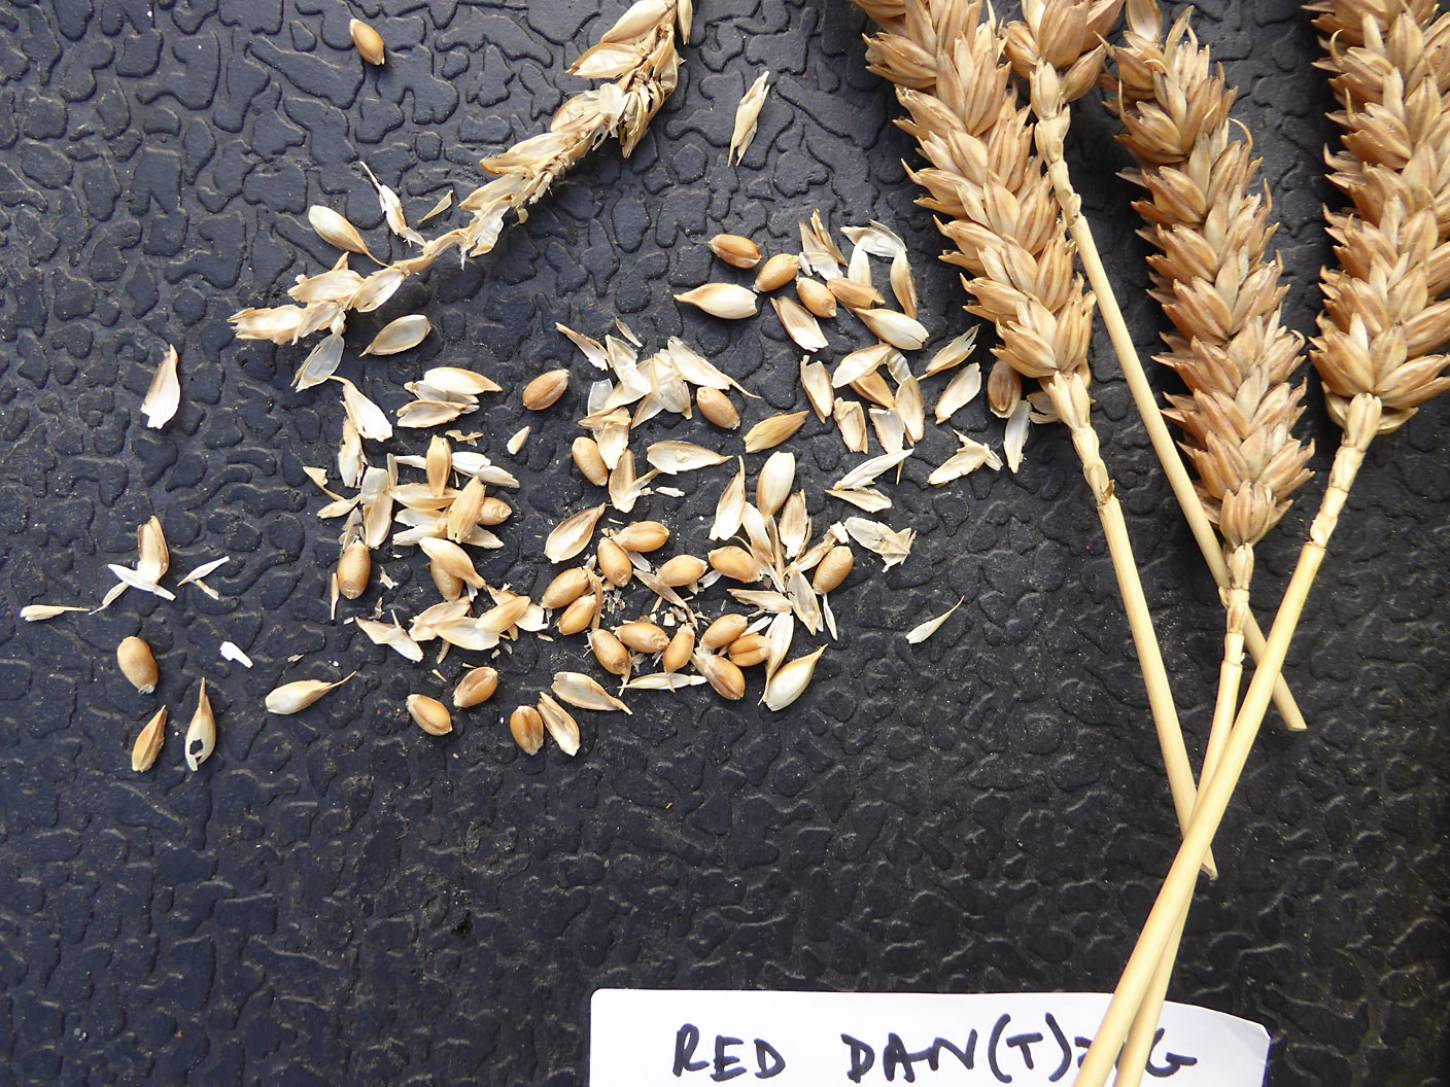 wheat identification images for <a href='http://brockwell-bake.org.uk/wheat/search.php?send=1&ID=109296&genes=1&bunt_a=1' target='_blank'>Red Dan(t)zig</a> - 6:03pm&nbsp;3<sup>rd</sup>&nbsp;Aug.&nbsp;'17